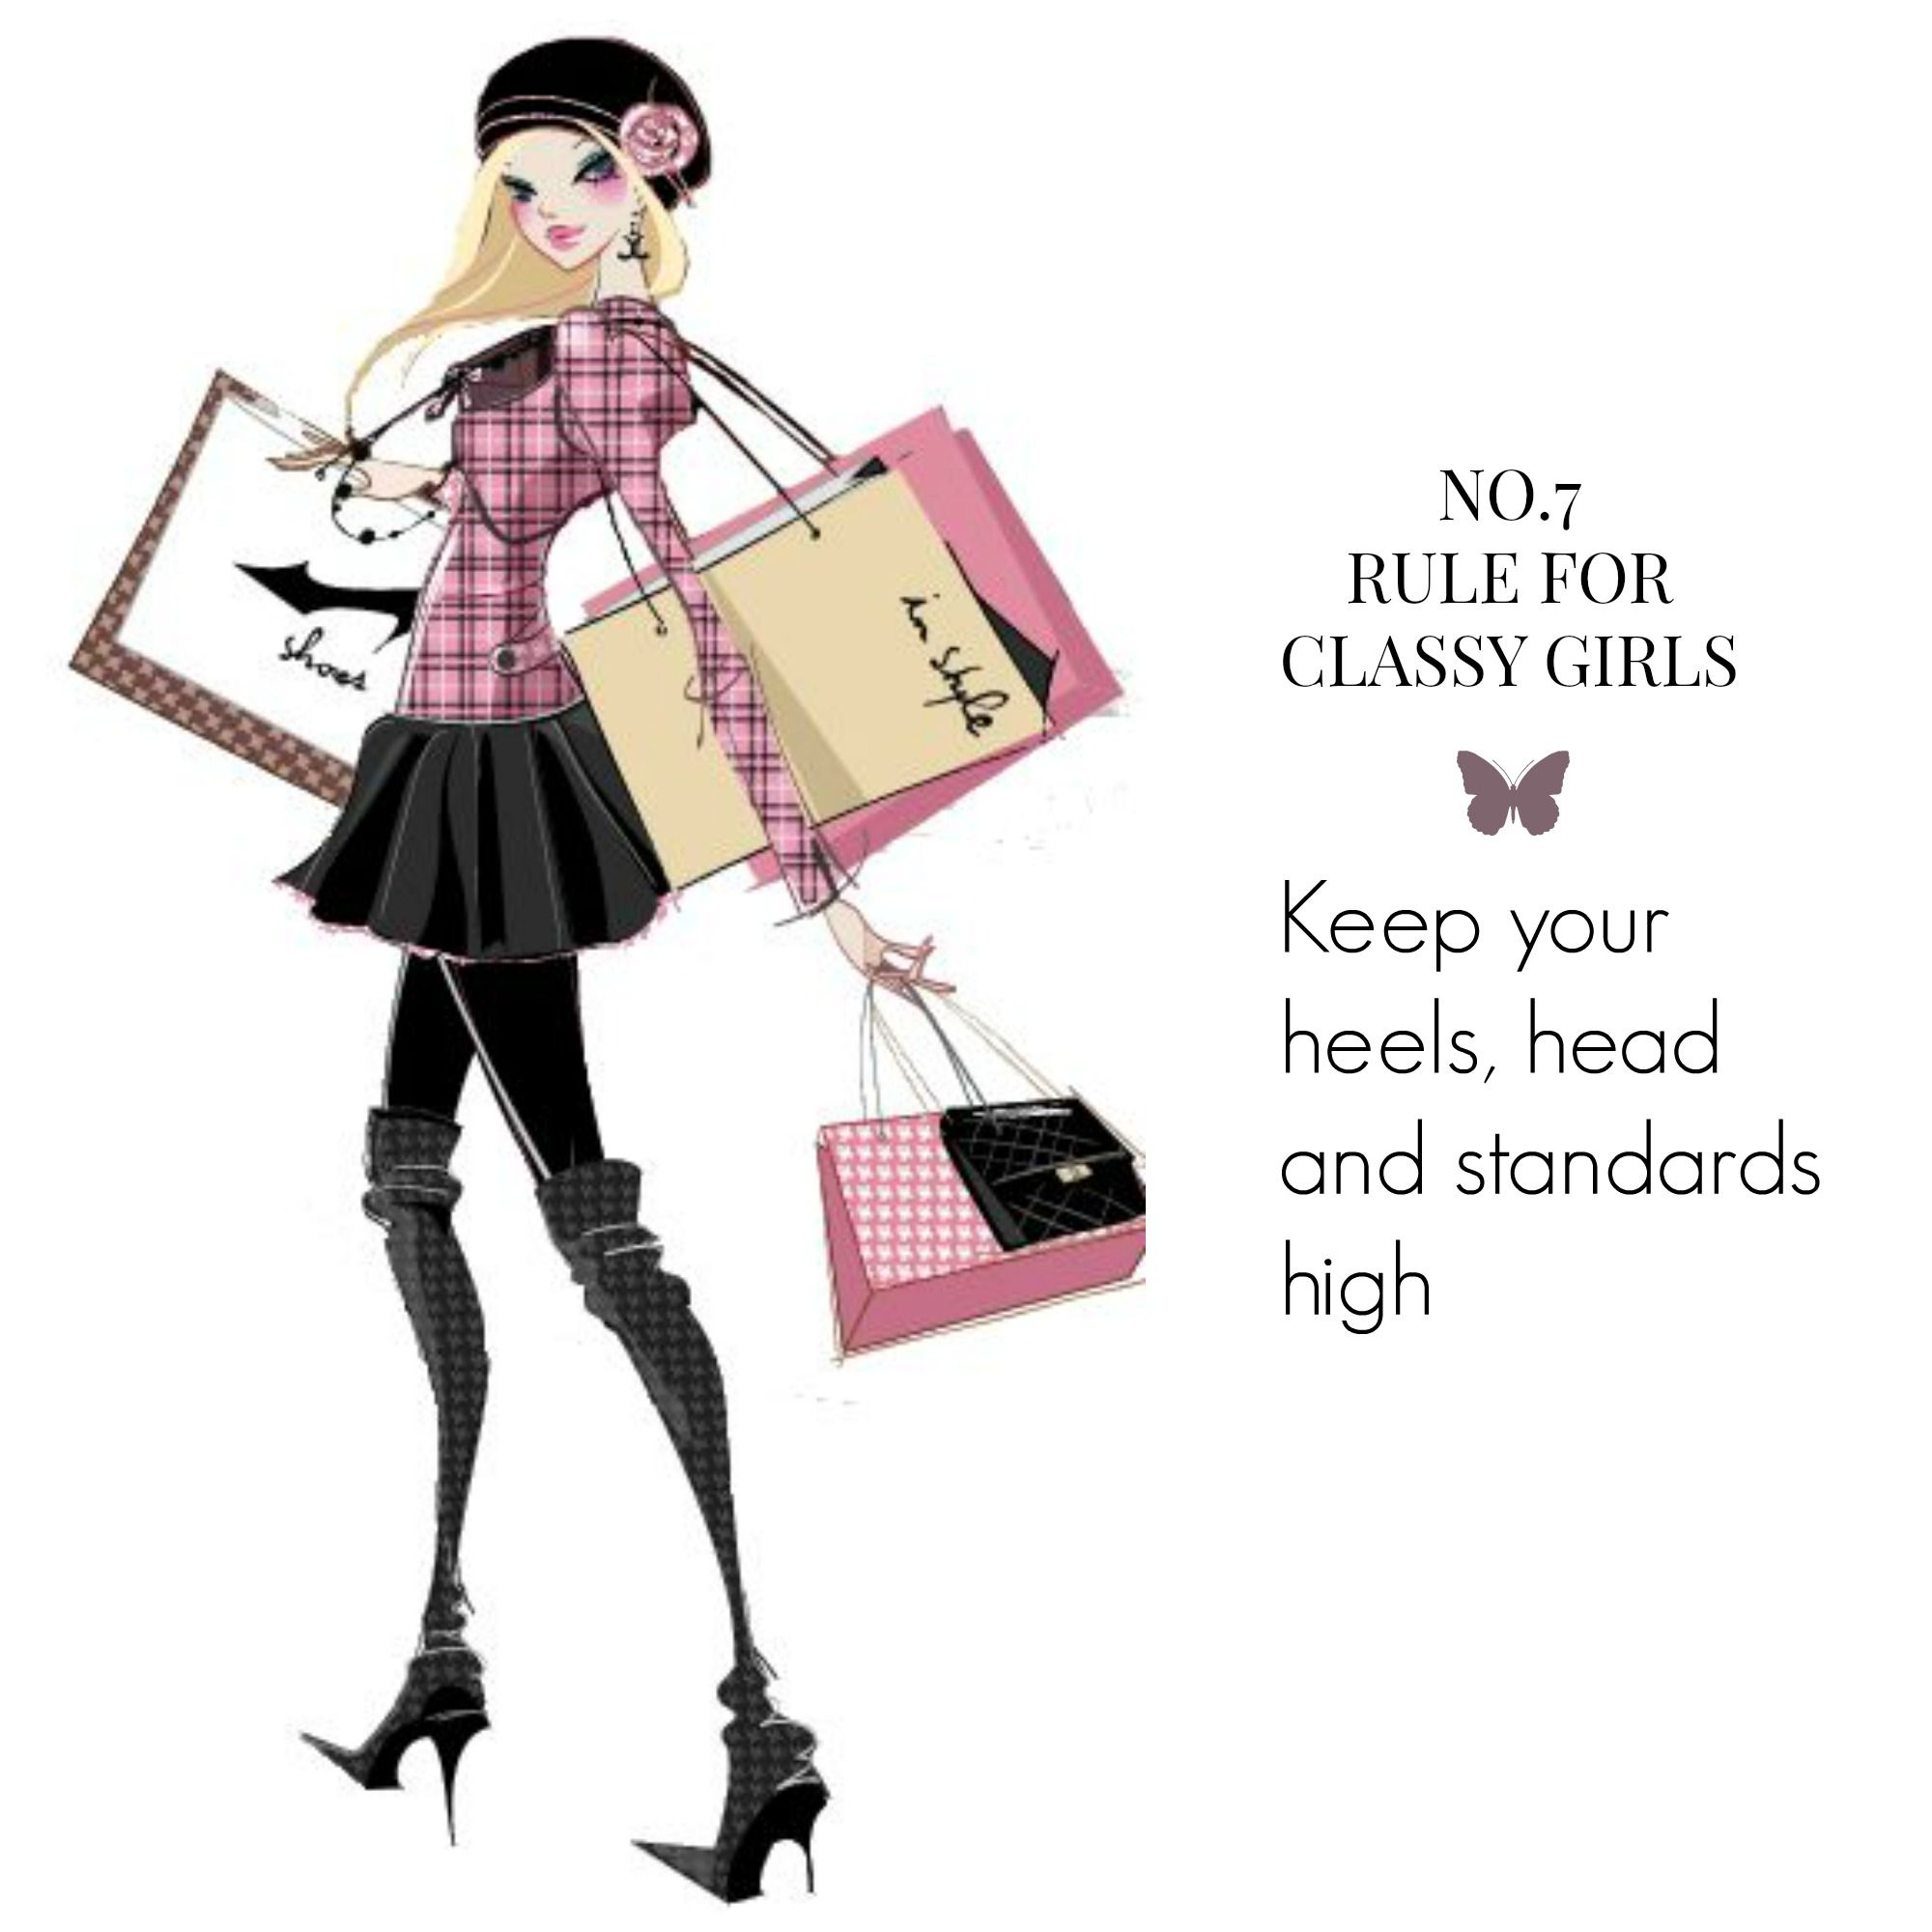 No.7 Rule for Classy Girls http://classygirl.co